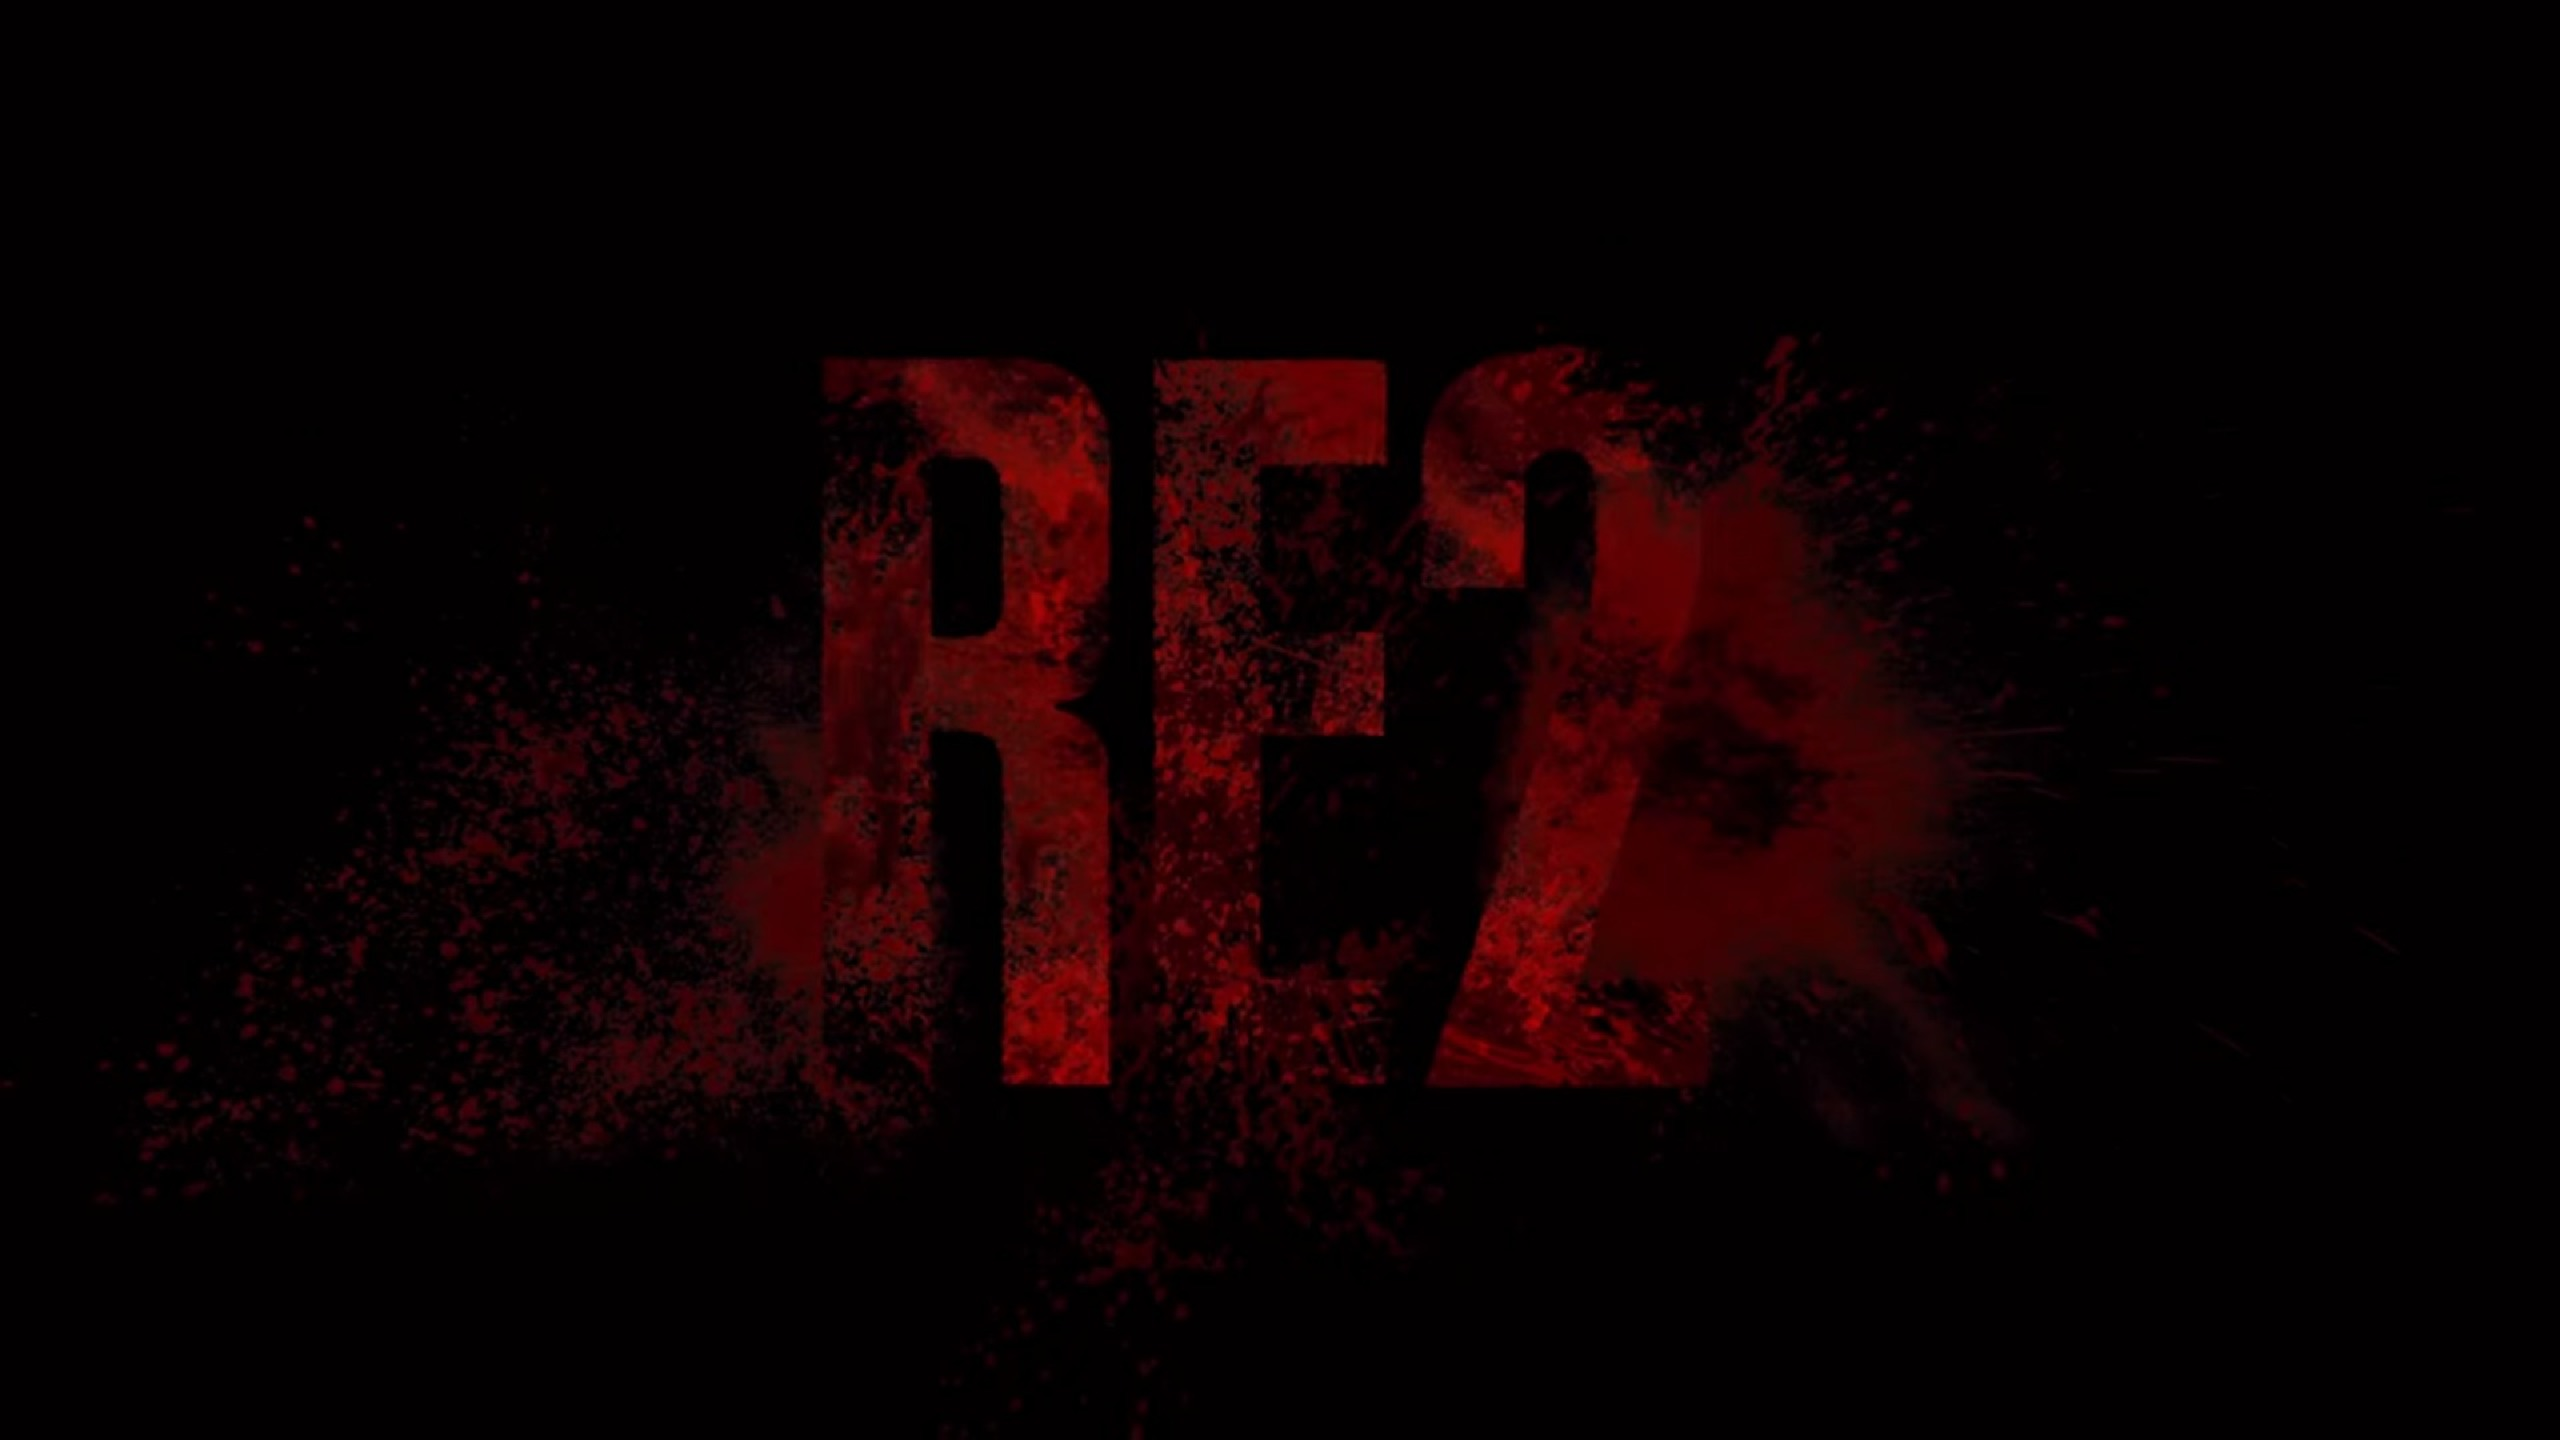 2560x1440 Resident Evil 2 2019 Title Poster 1440p Resolution